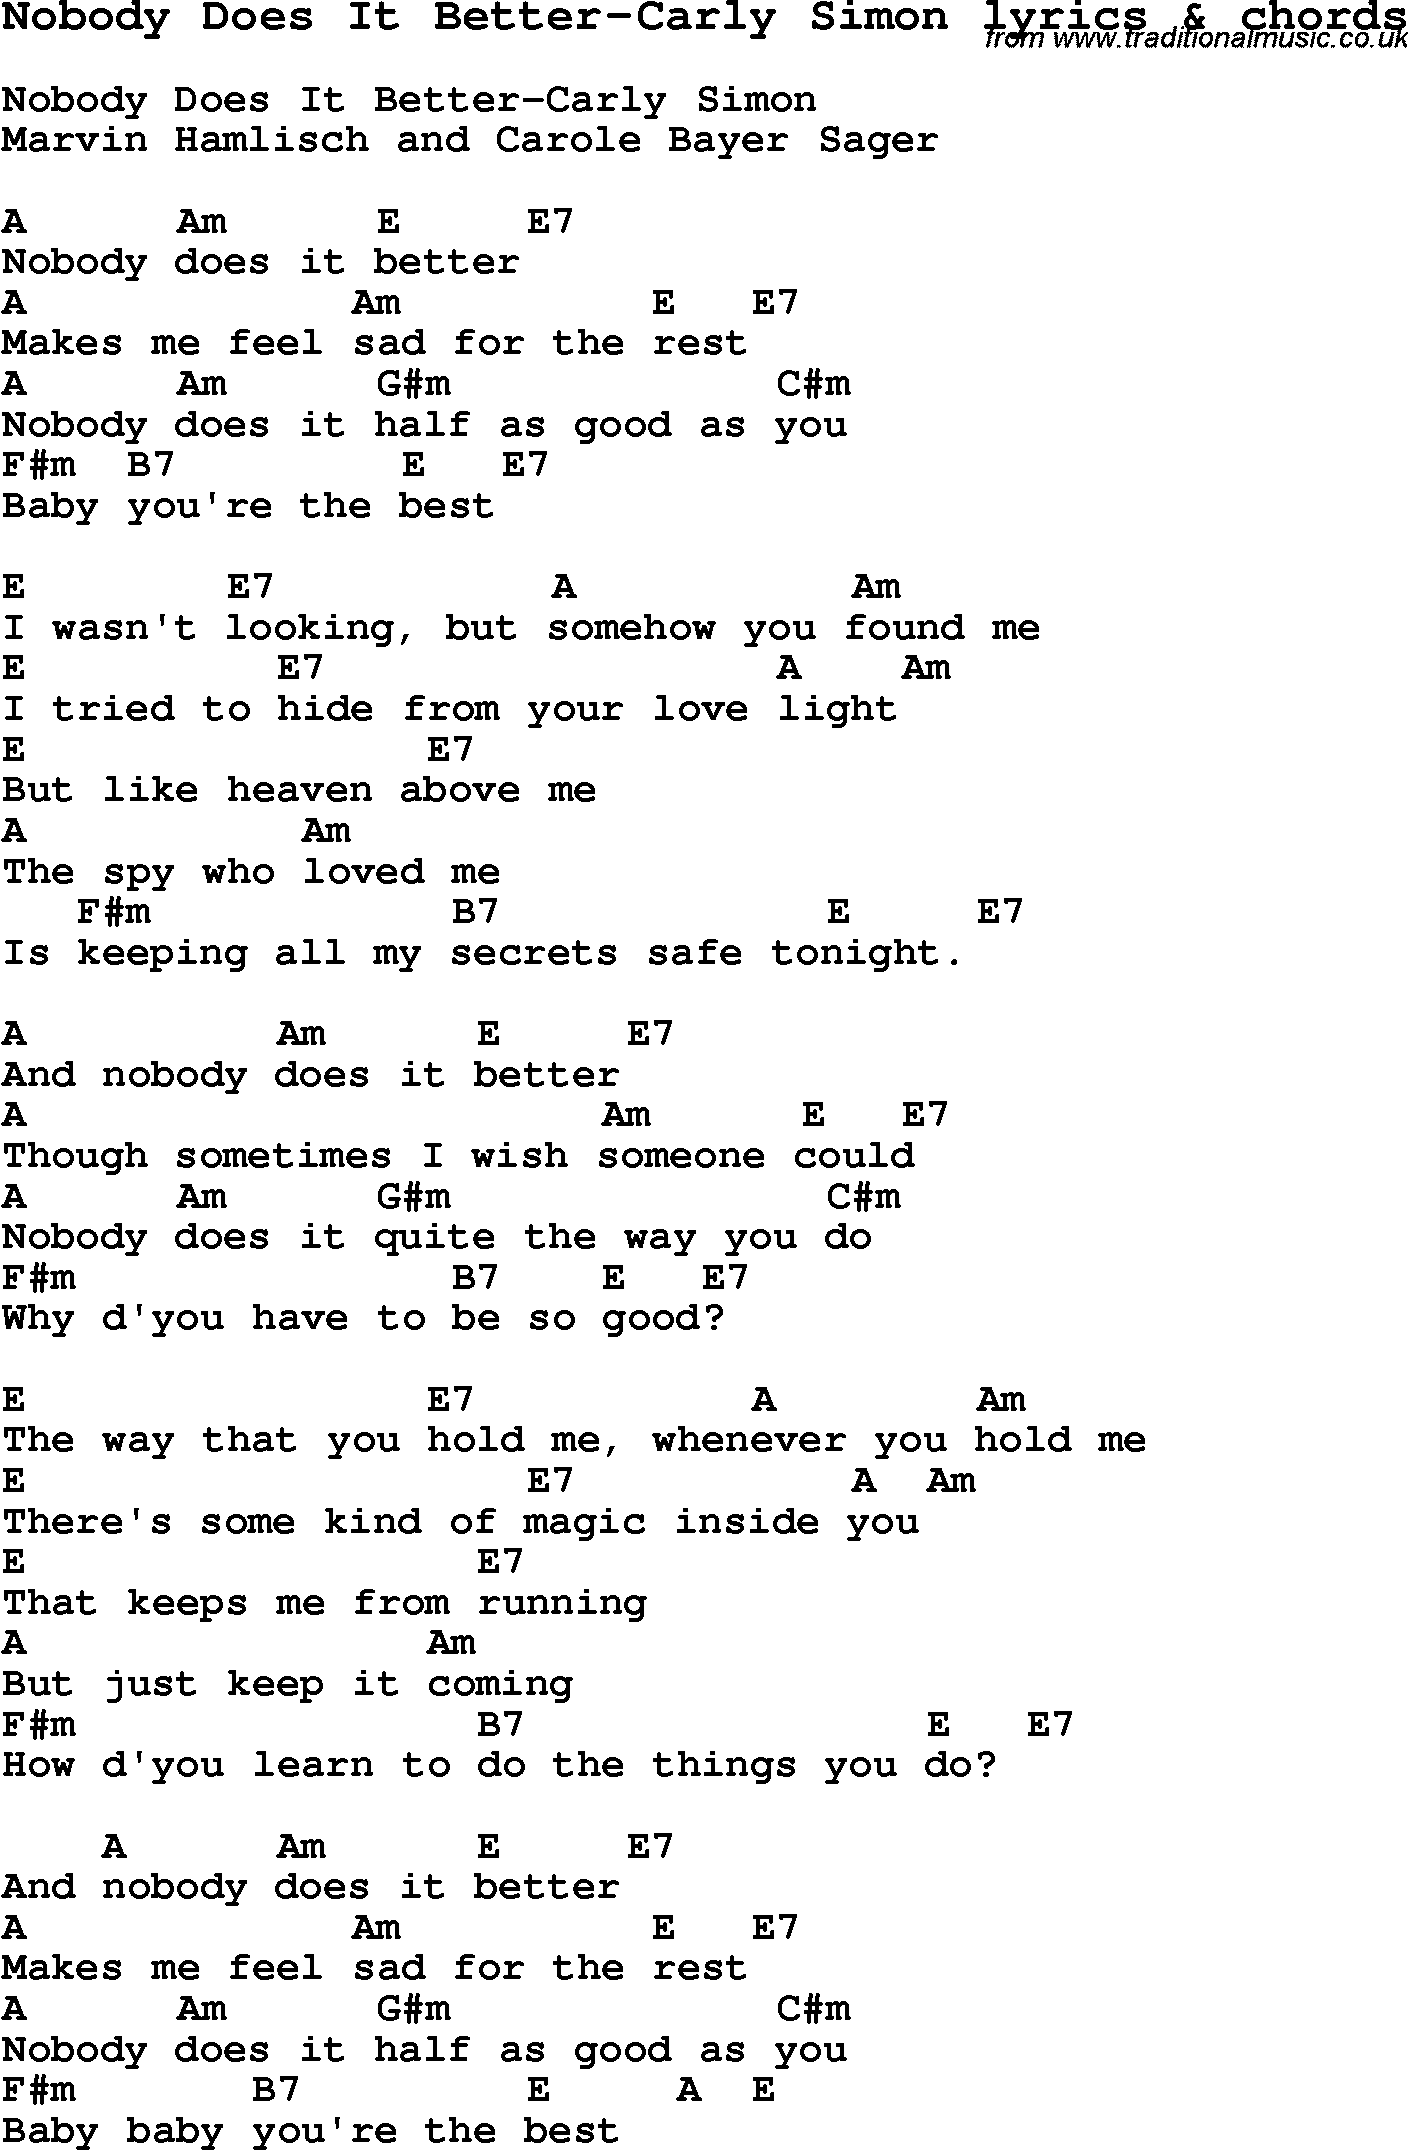 Love song lyrics for nobody does it better carly simon with love song lyrics for nobody does it better carly simon with chords for ukulele hexwebz Images